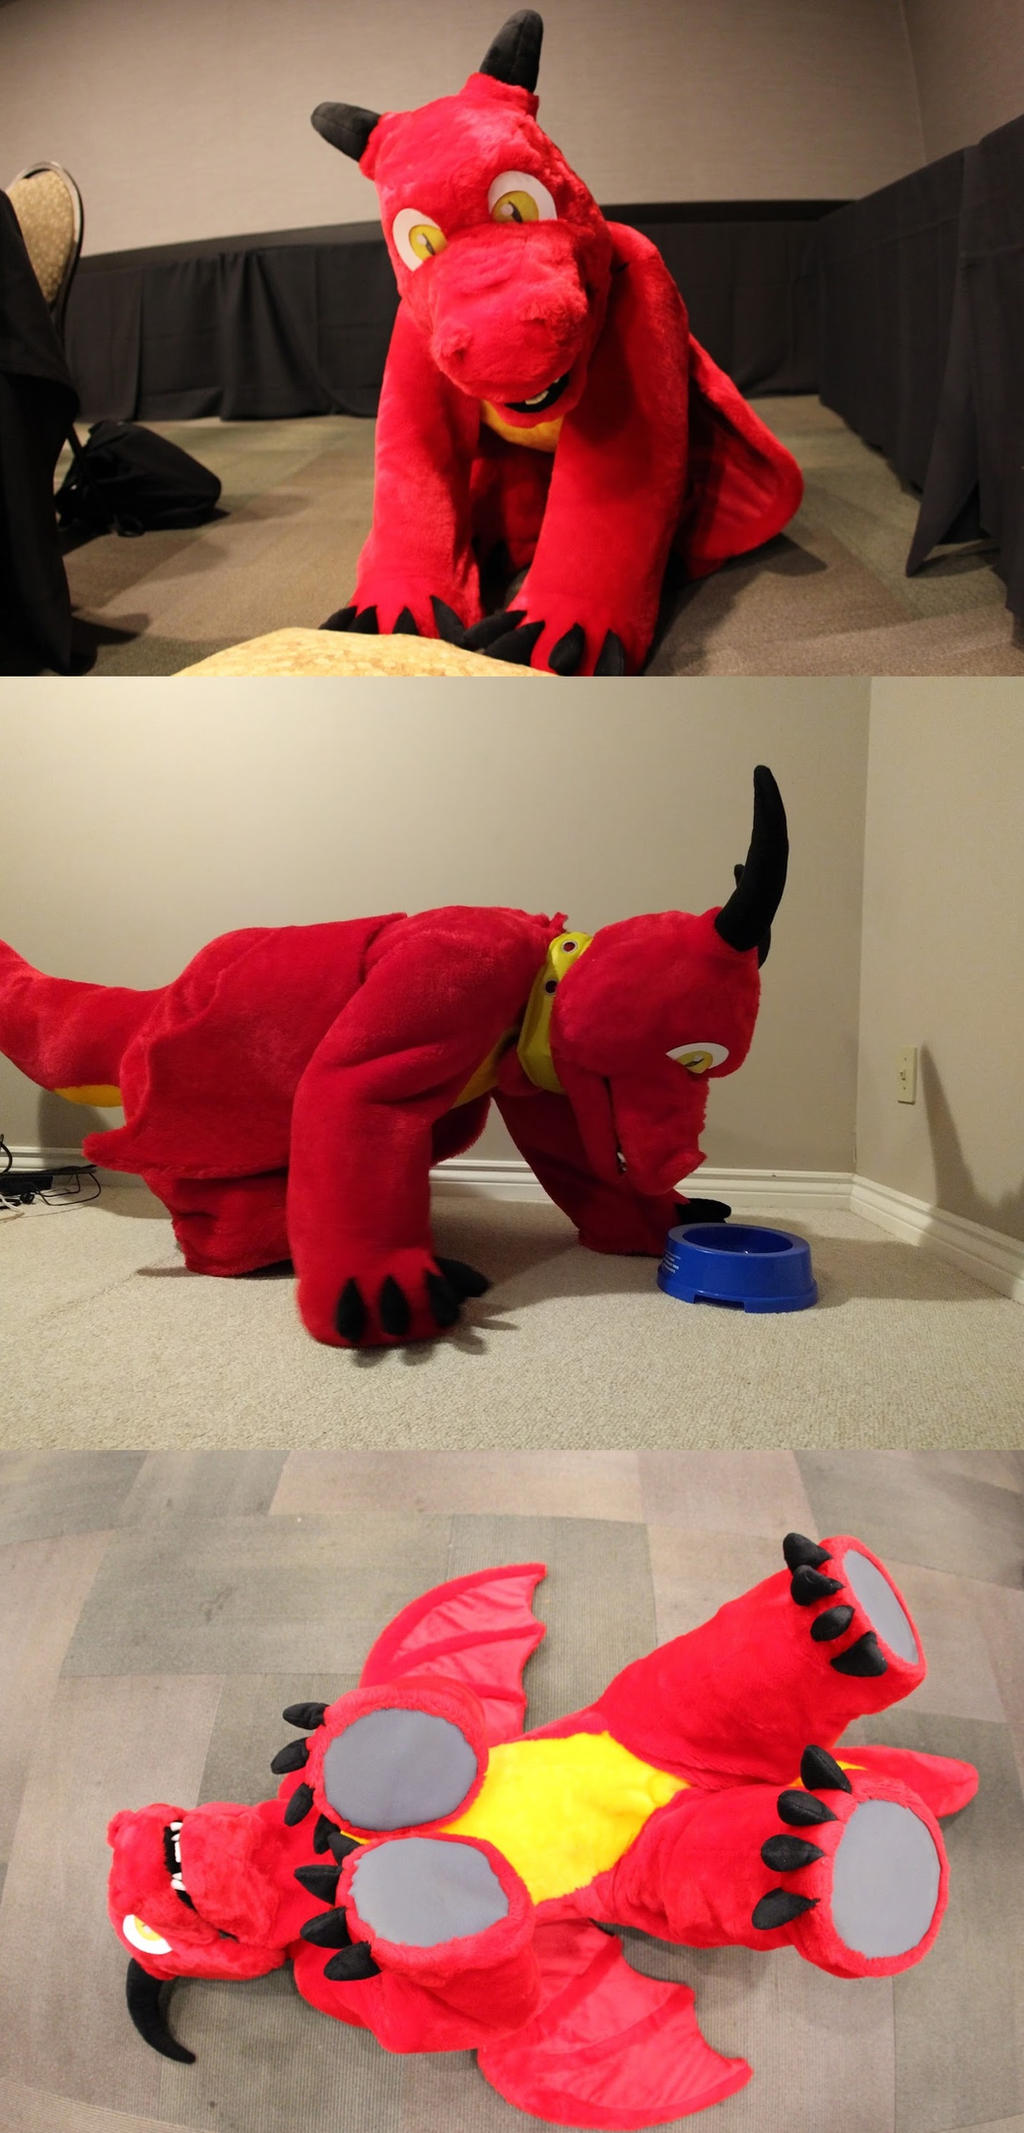 Red dragon quad suit by Bladespark